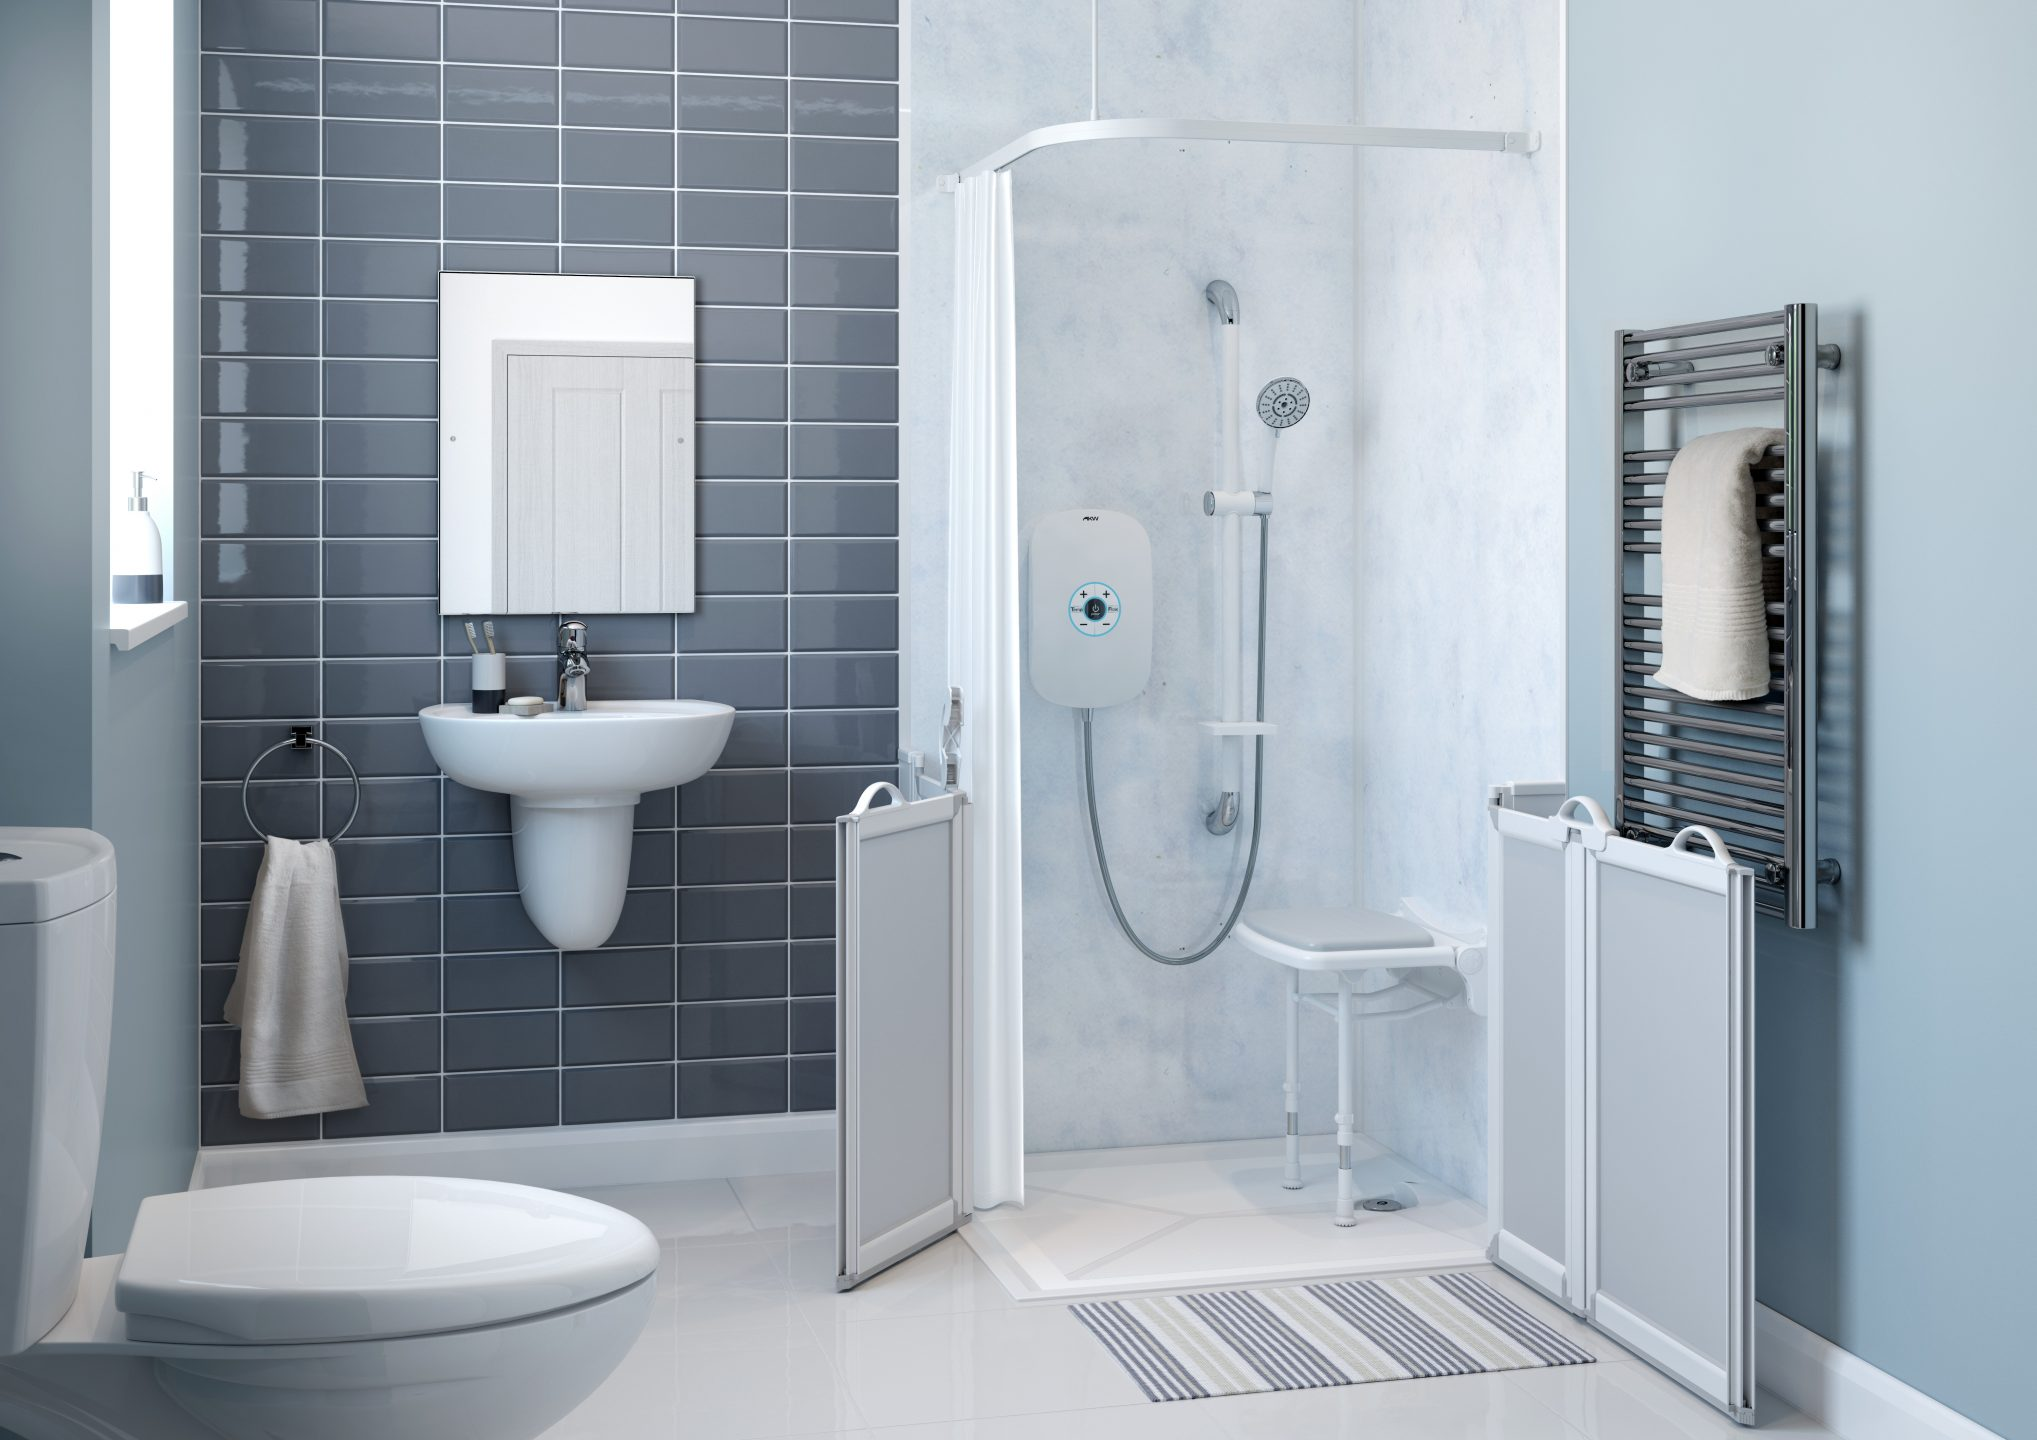 Shower with a shower seat